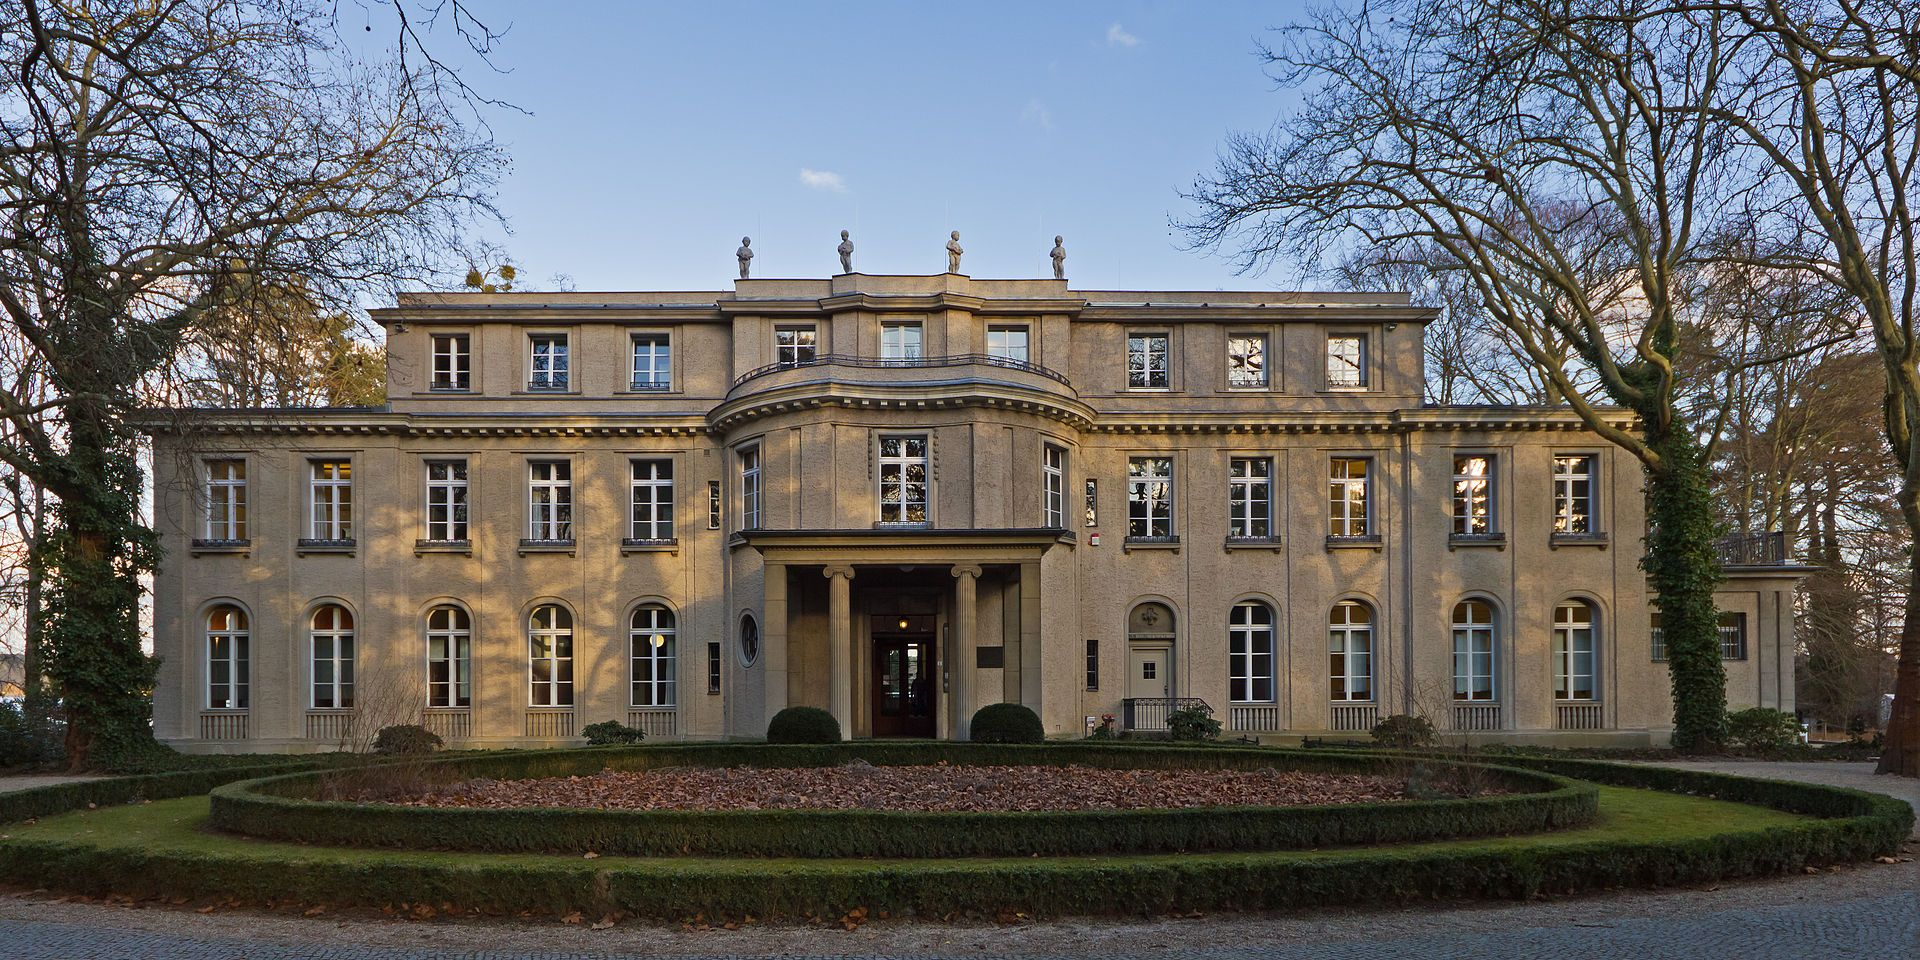 The villa at 56–58 Am Großen Wannsee, where the Wannsee Conference was held is now a memorial and museum